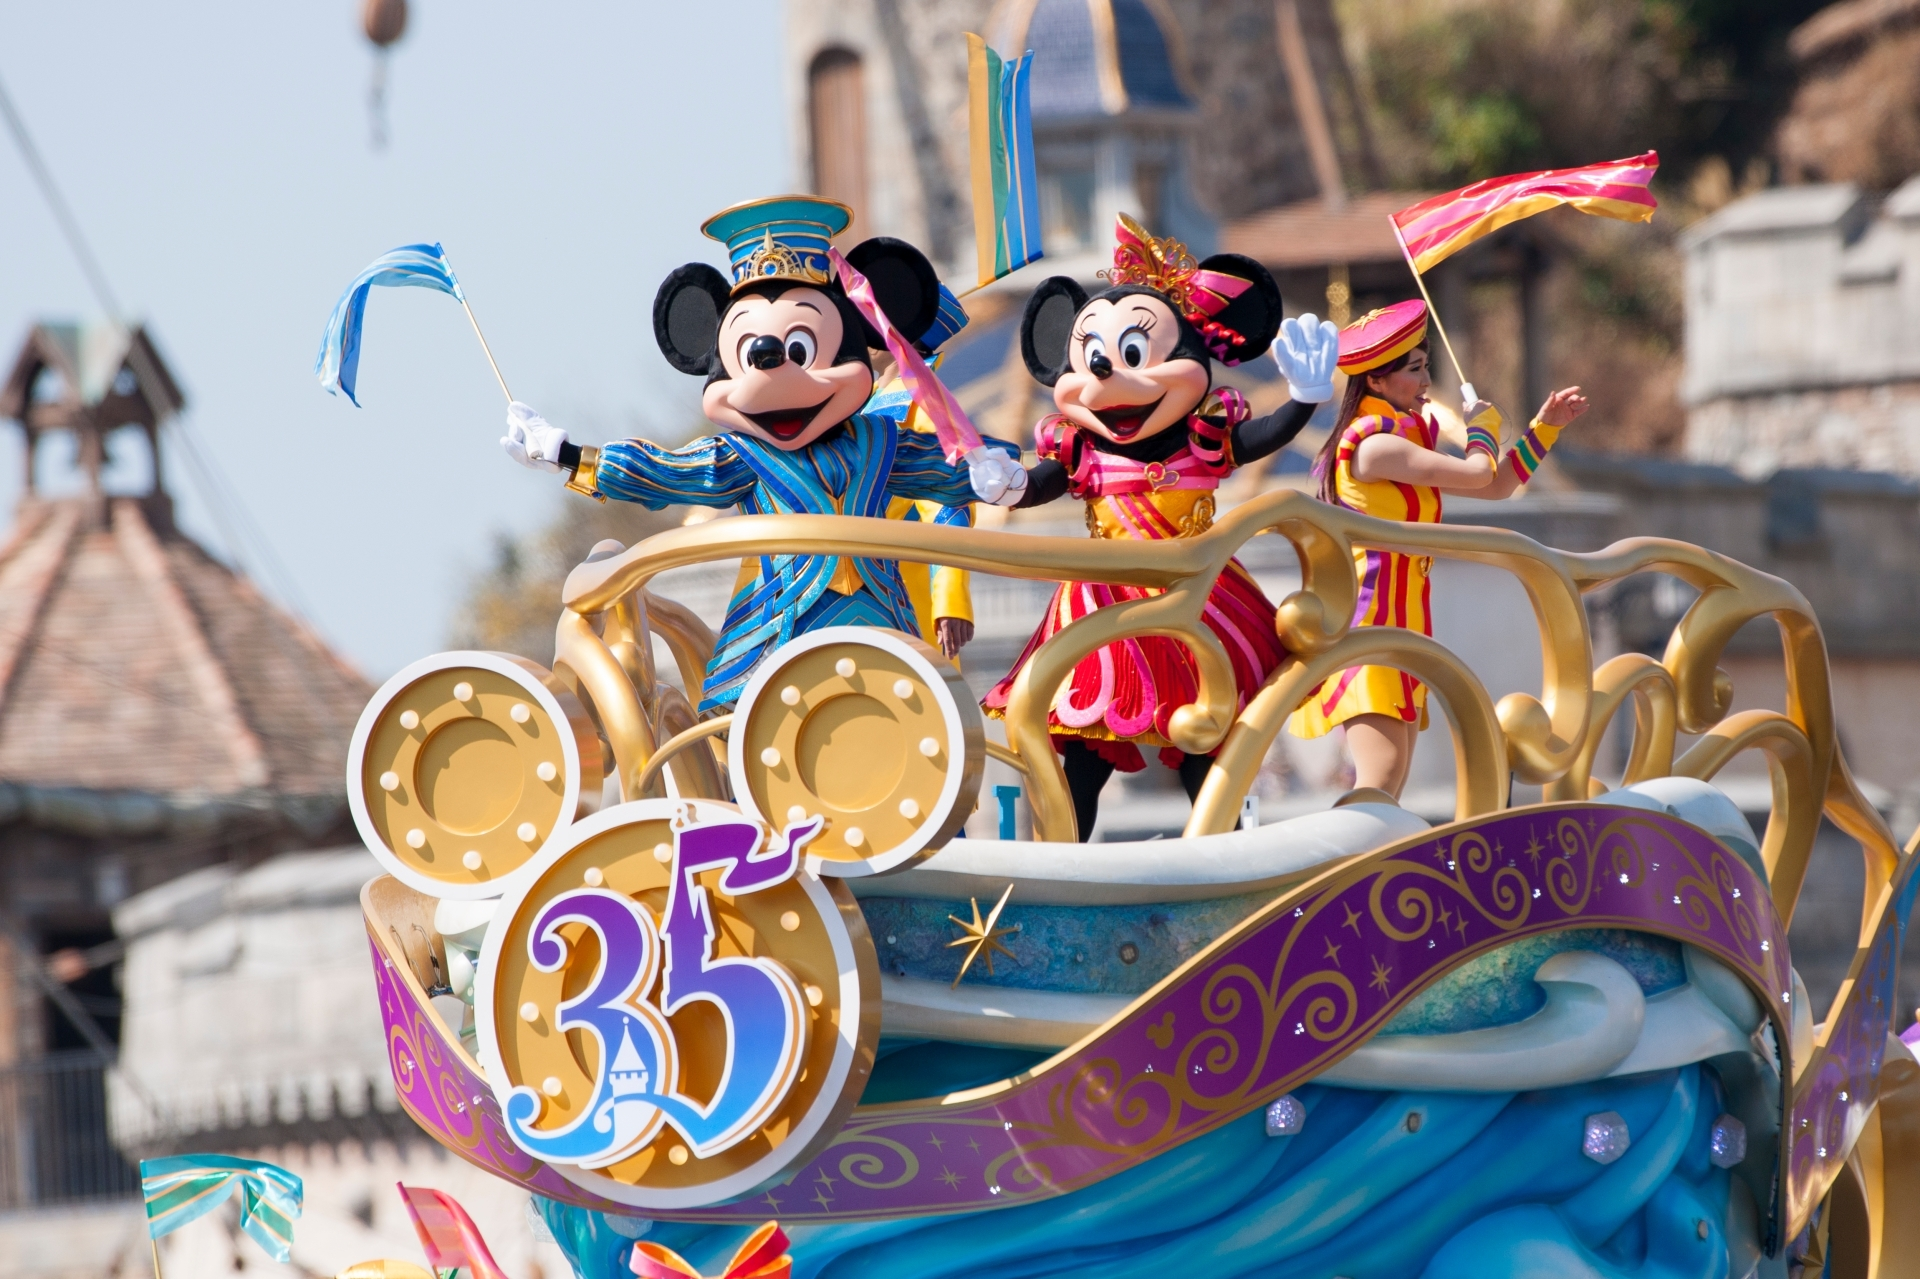 Tokyo Disneyland and DisneySea tips to make the most of your visit